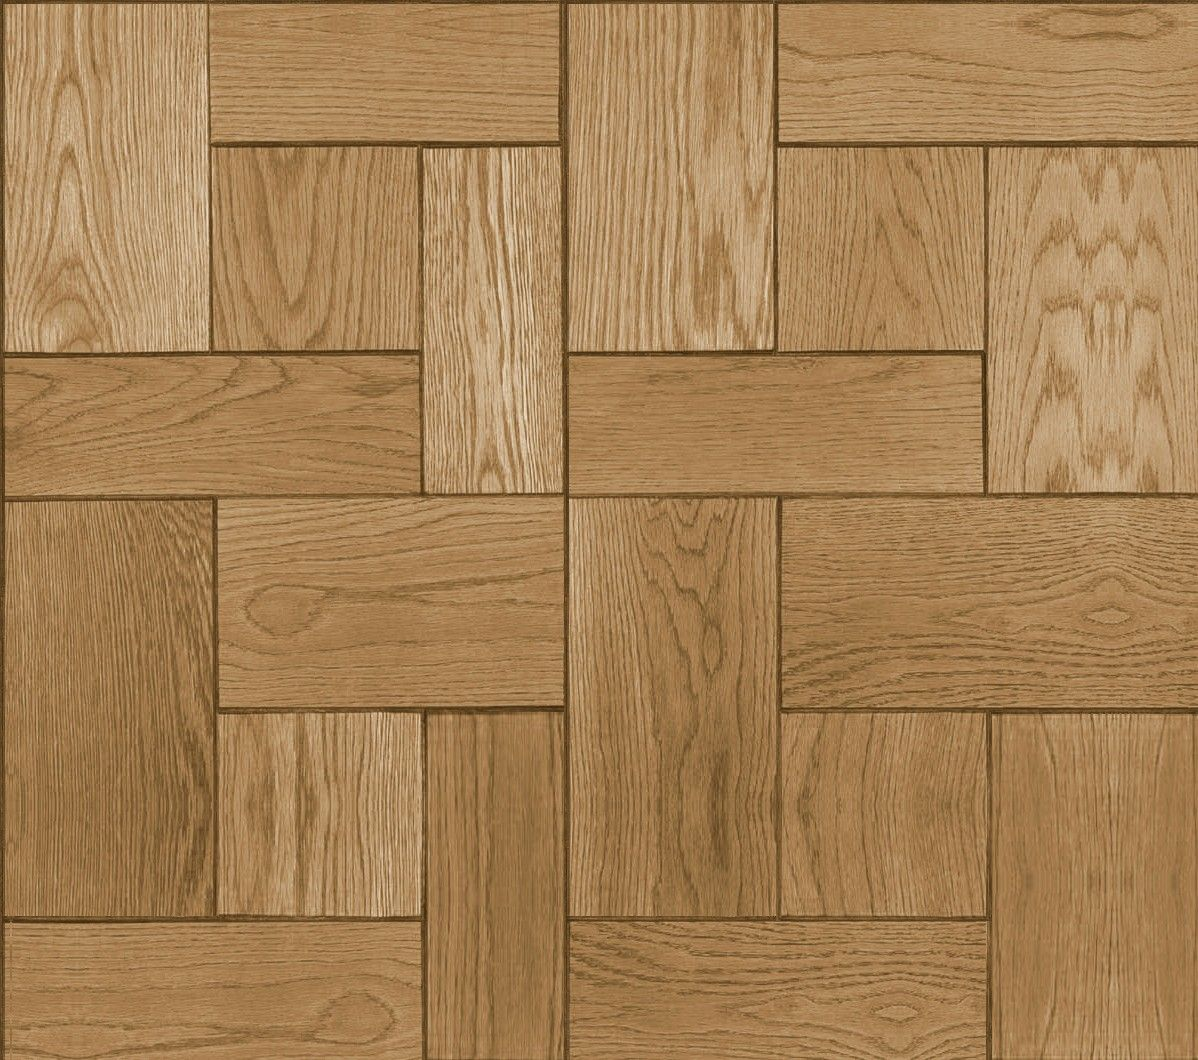 Kitchen Floor Tiles Texture Wood Floor Texture Sketchup Warehous Wooden Floor Texture